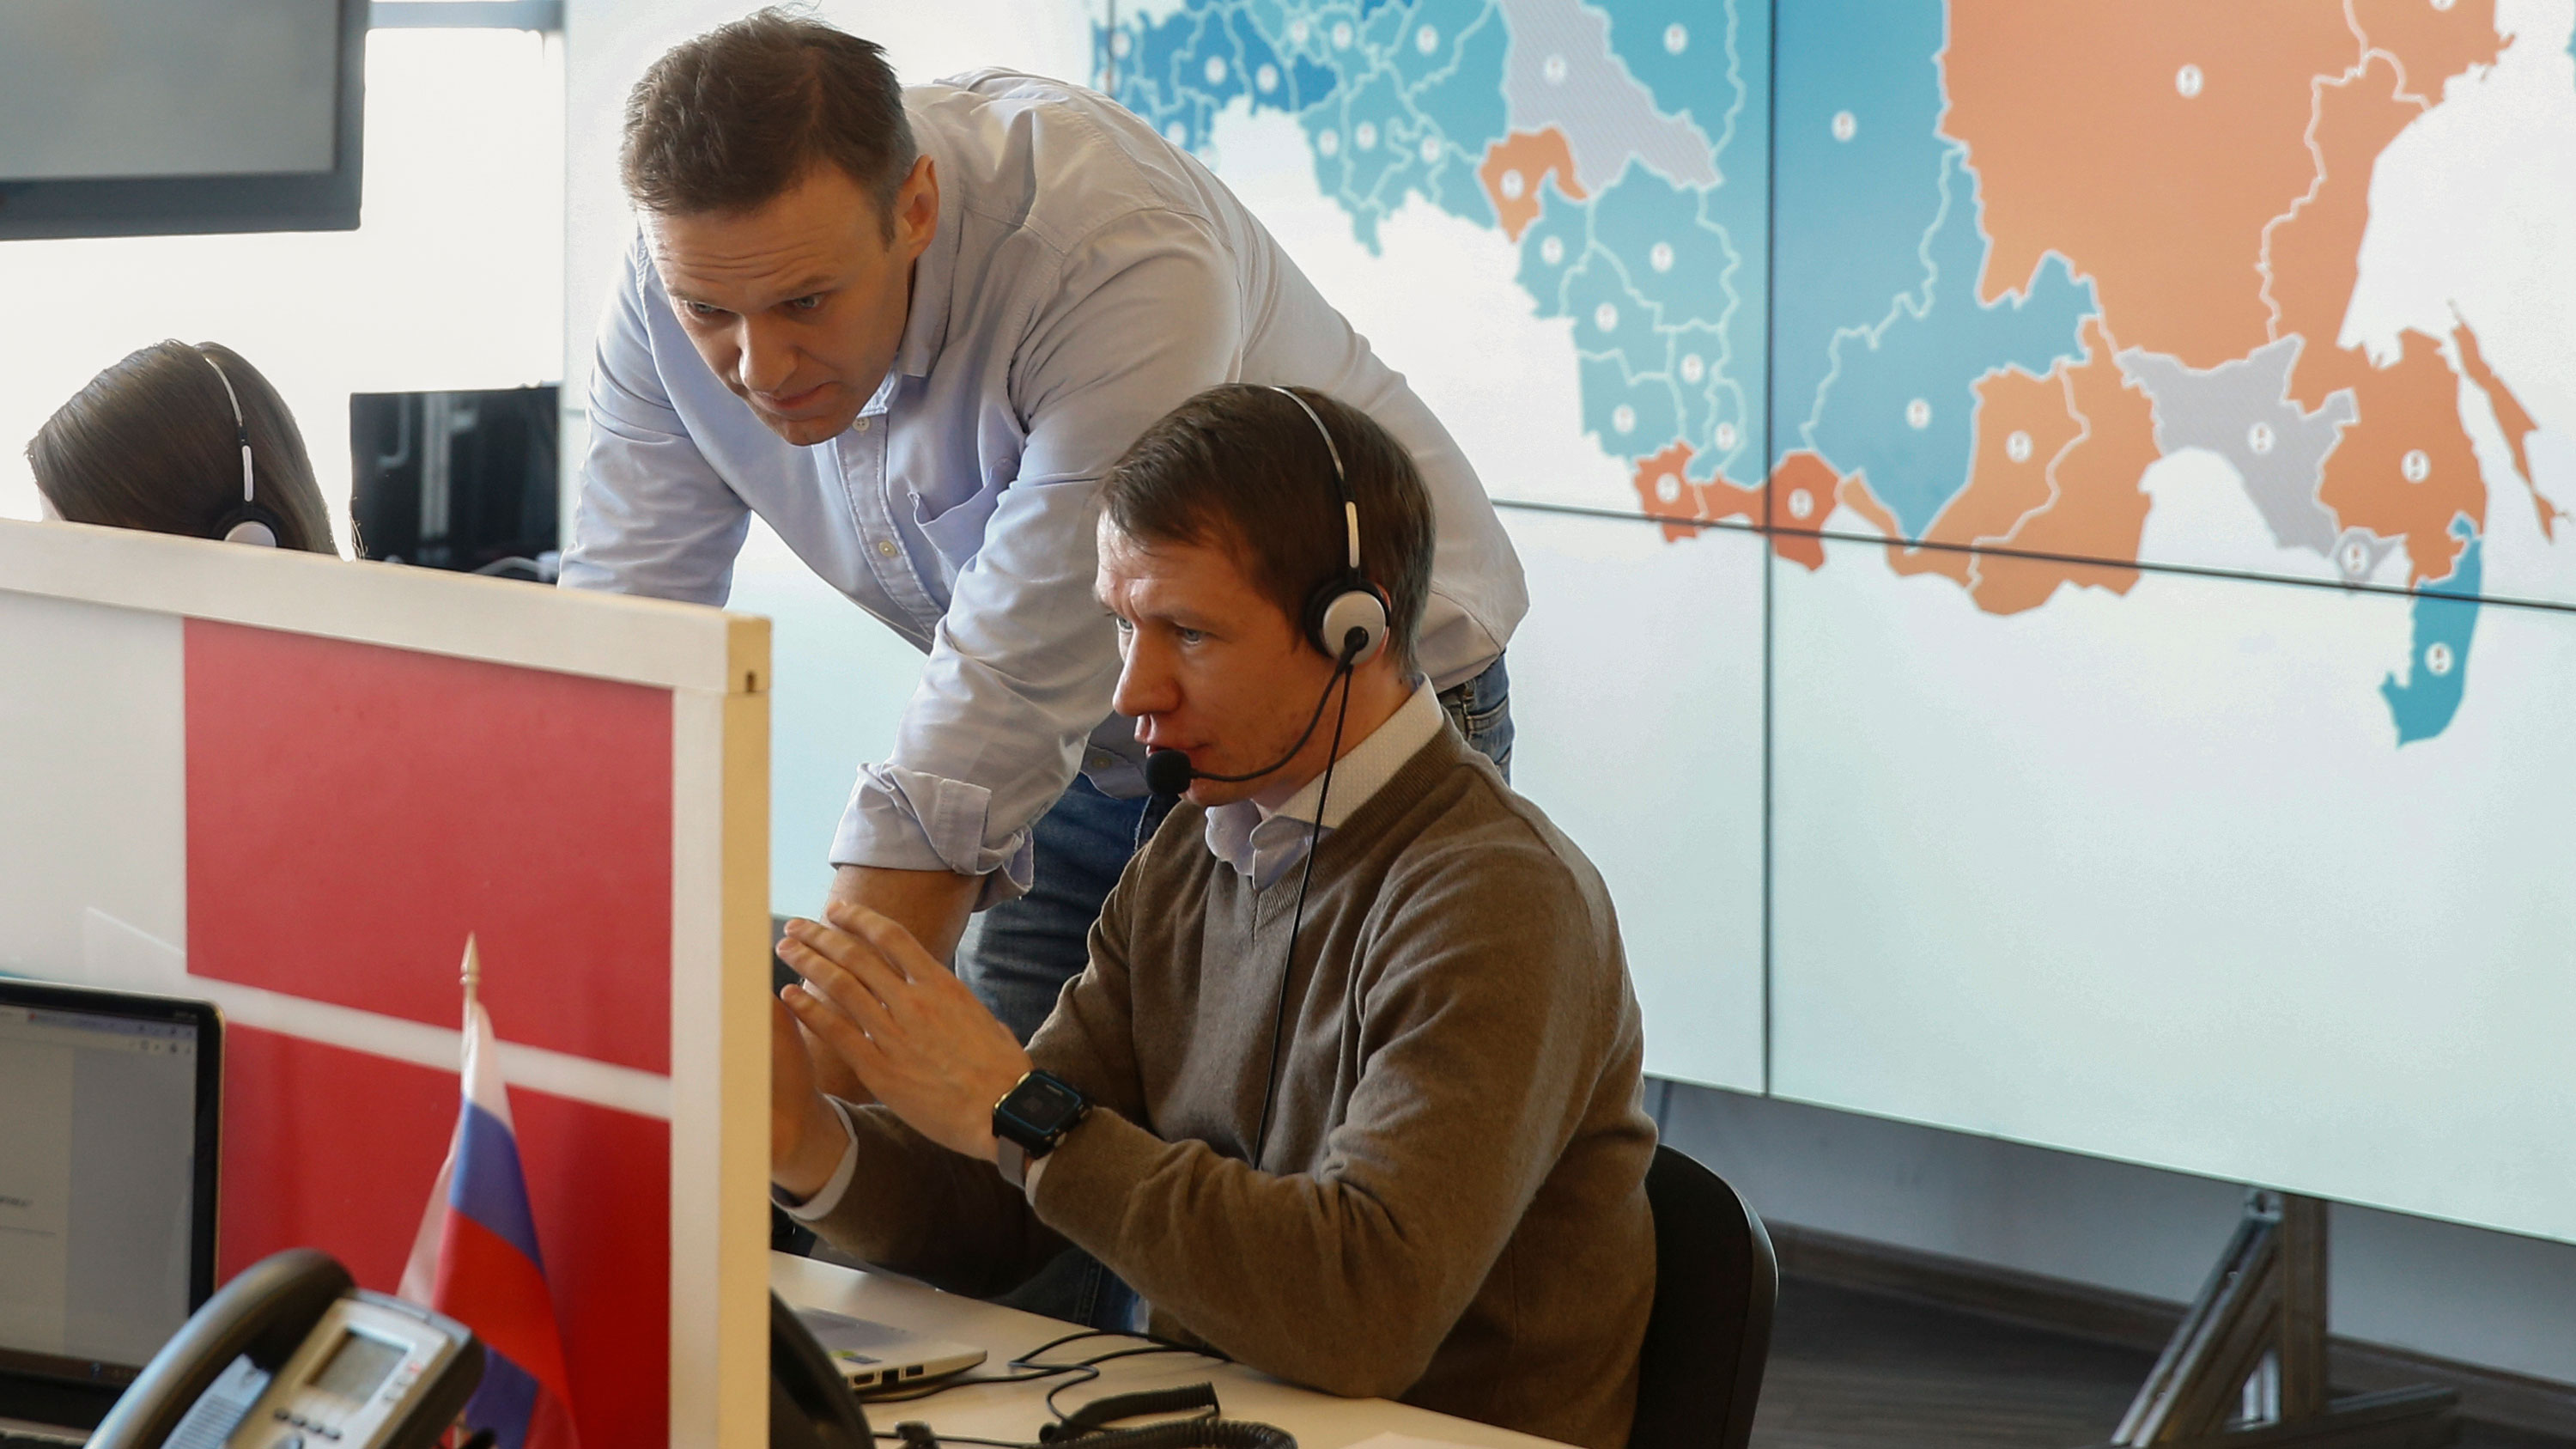 Russian court declares Navalny groups 'extremist' ahead of elections